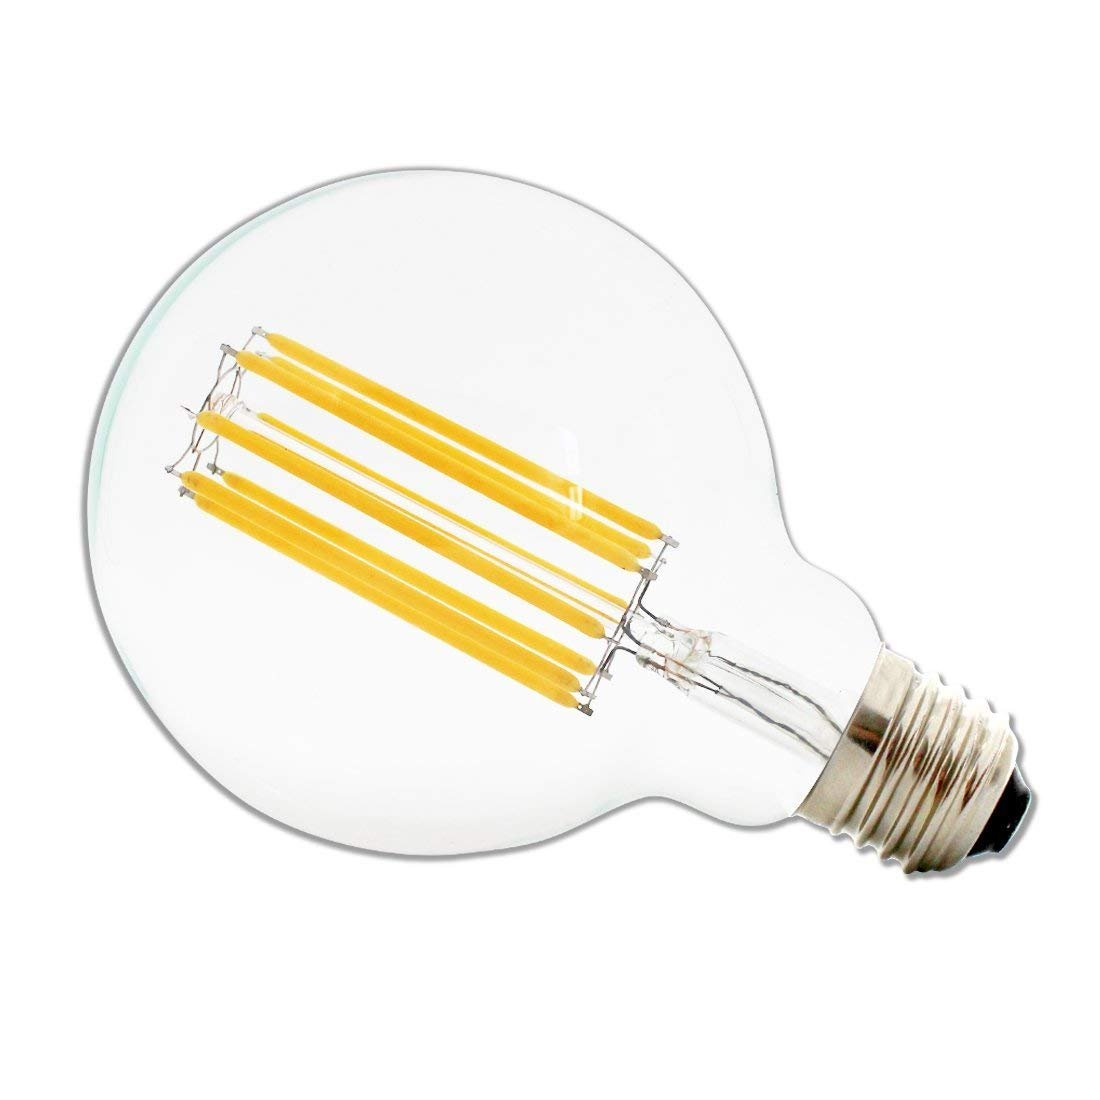 60Watts Equivalent 110-120VAC Dimmable E26 Base Warm White 2700K Culver Led Vintage Edison Bulb G30//G95 6W LED Light Filament Bulb Large Globe Bulb 6W -2 Pack Culver LED Lighting Solution Corp